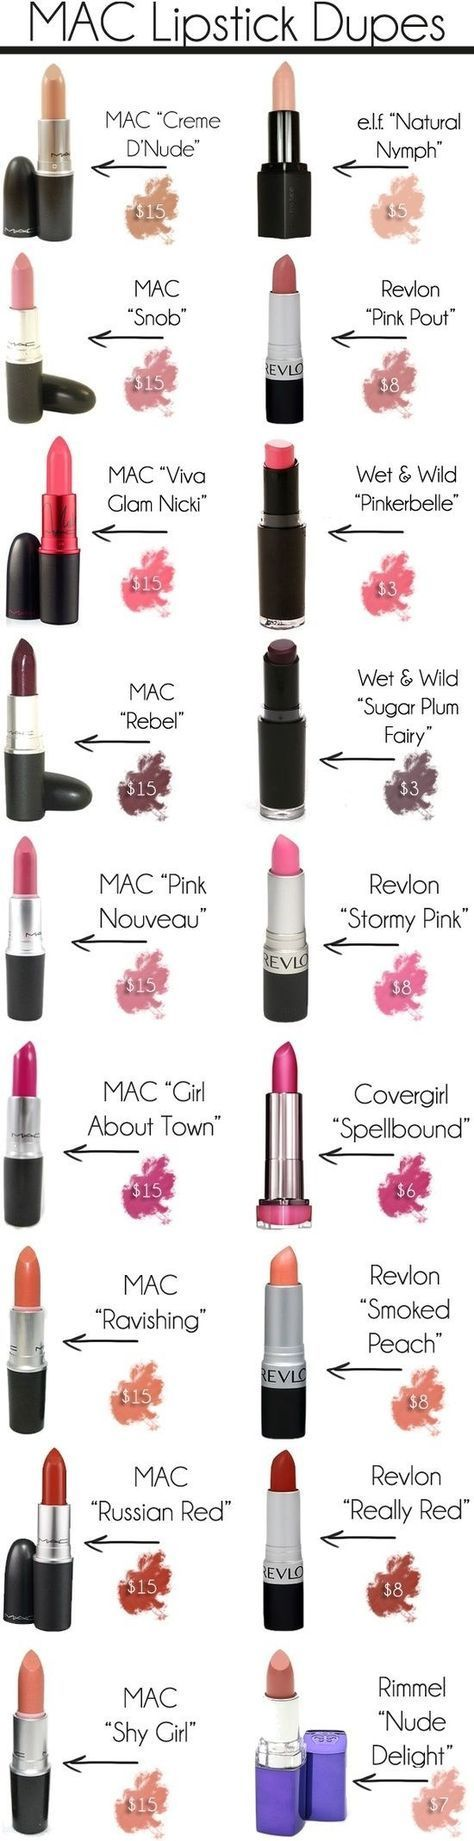 MAC Lipstick Drugstore Dupes | Makeup Tutorials http://makeuptutorials.com/mac-drugstore-makeup-dupes